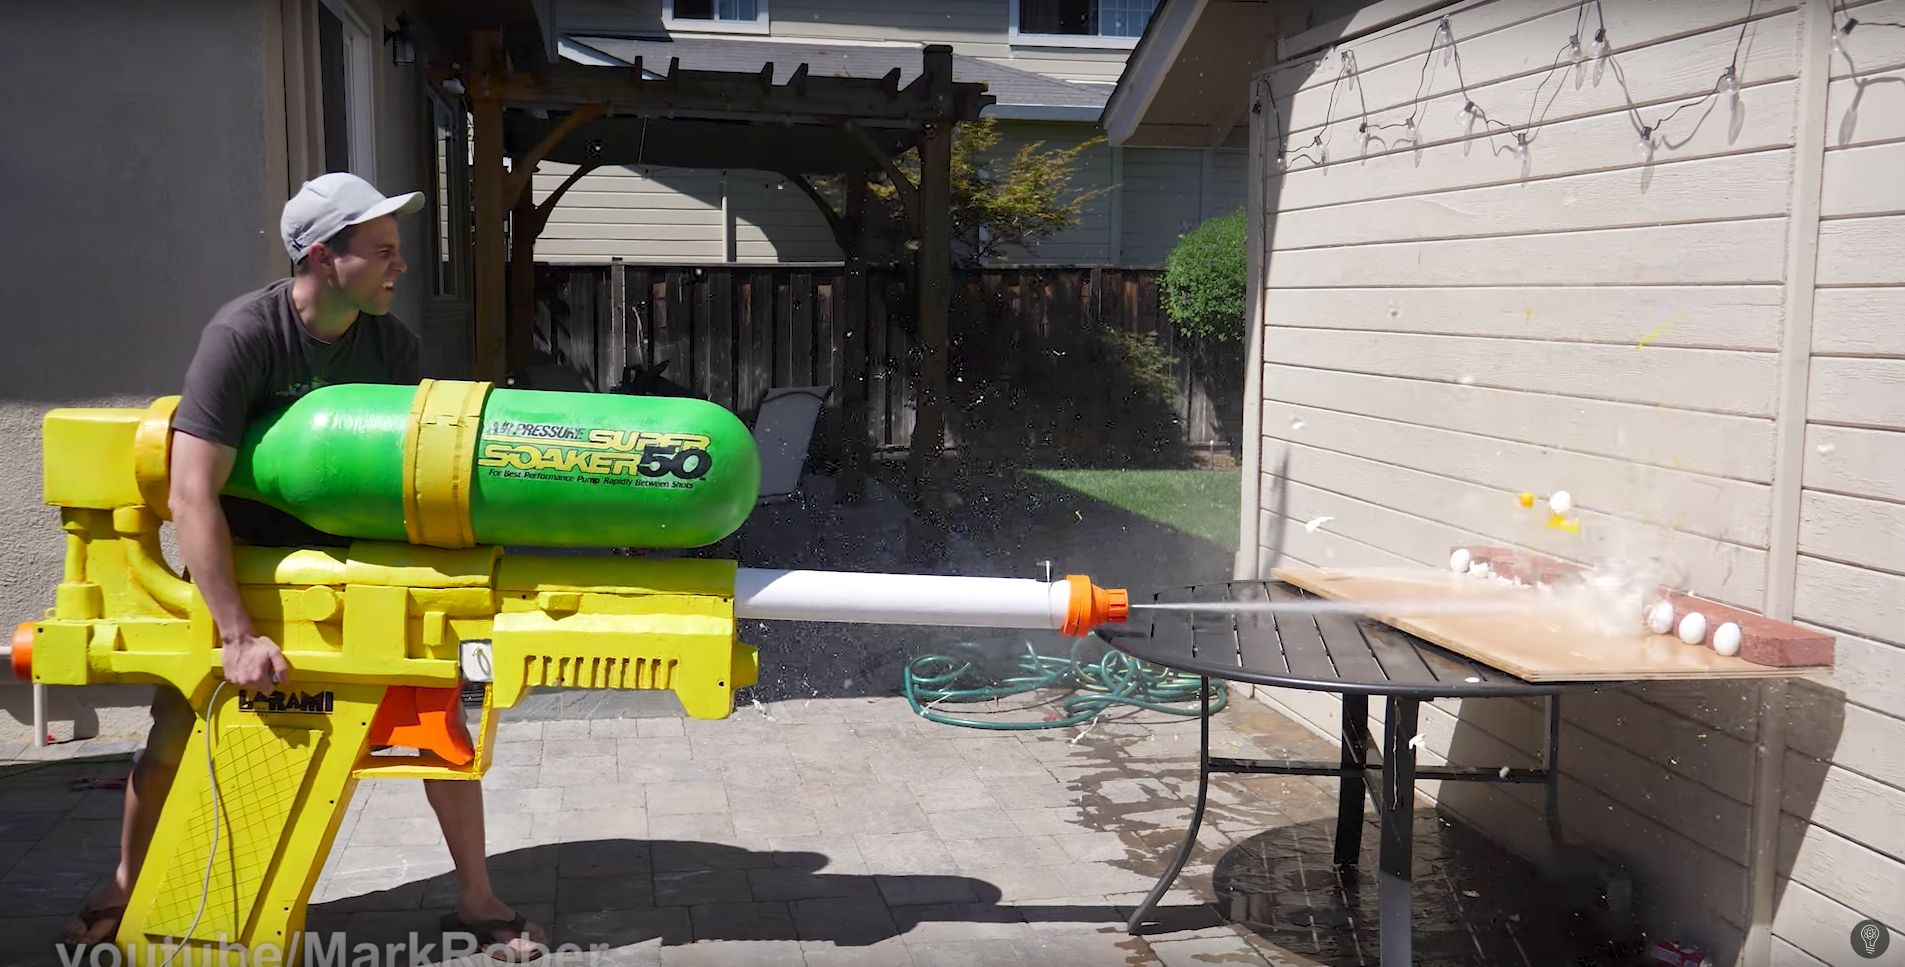 This giant super soaker gun which is seven feet long is competing for a Guinness World Record